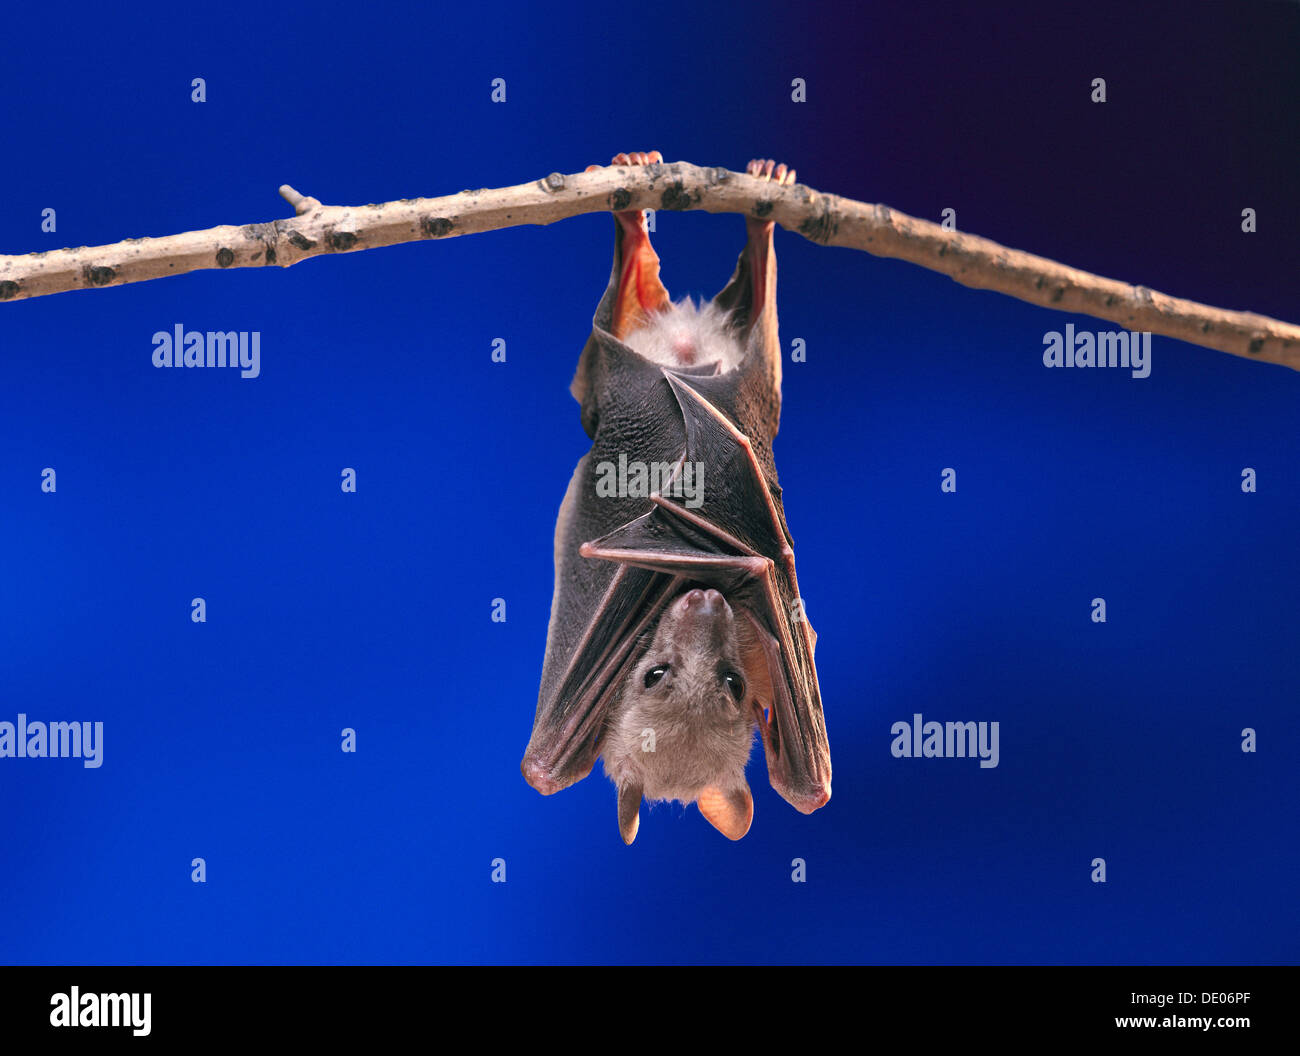 Fruit Bat or Flying Fox (Pteropus medius) resting by hanging upside down on a branch Stock Photo